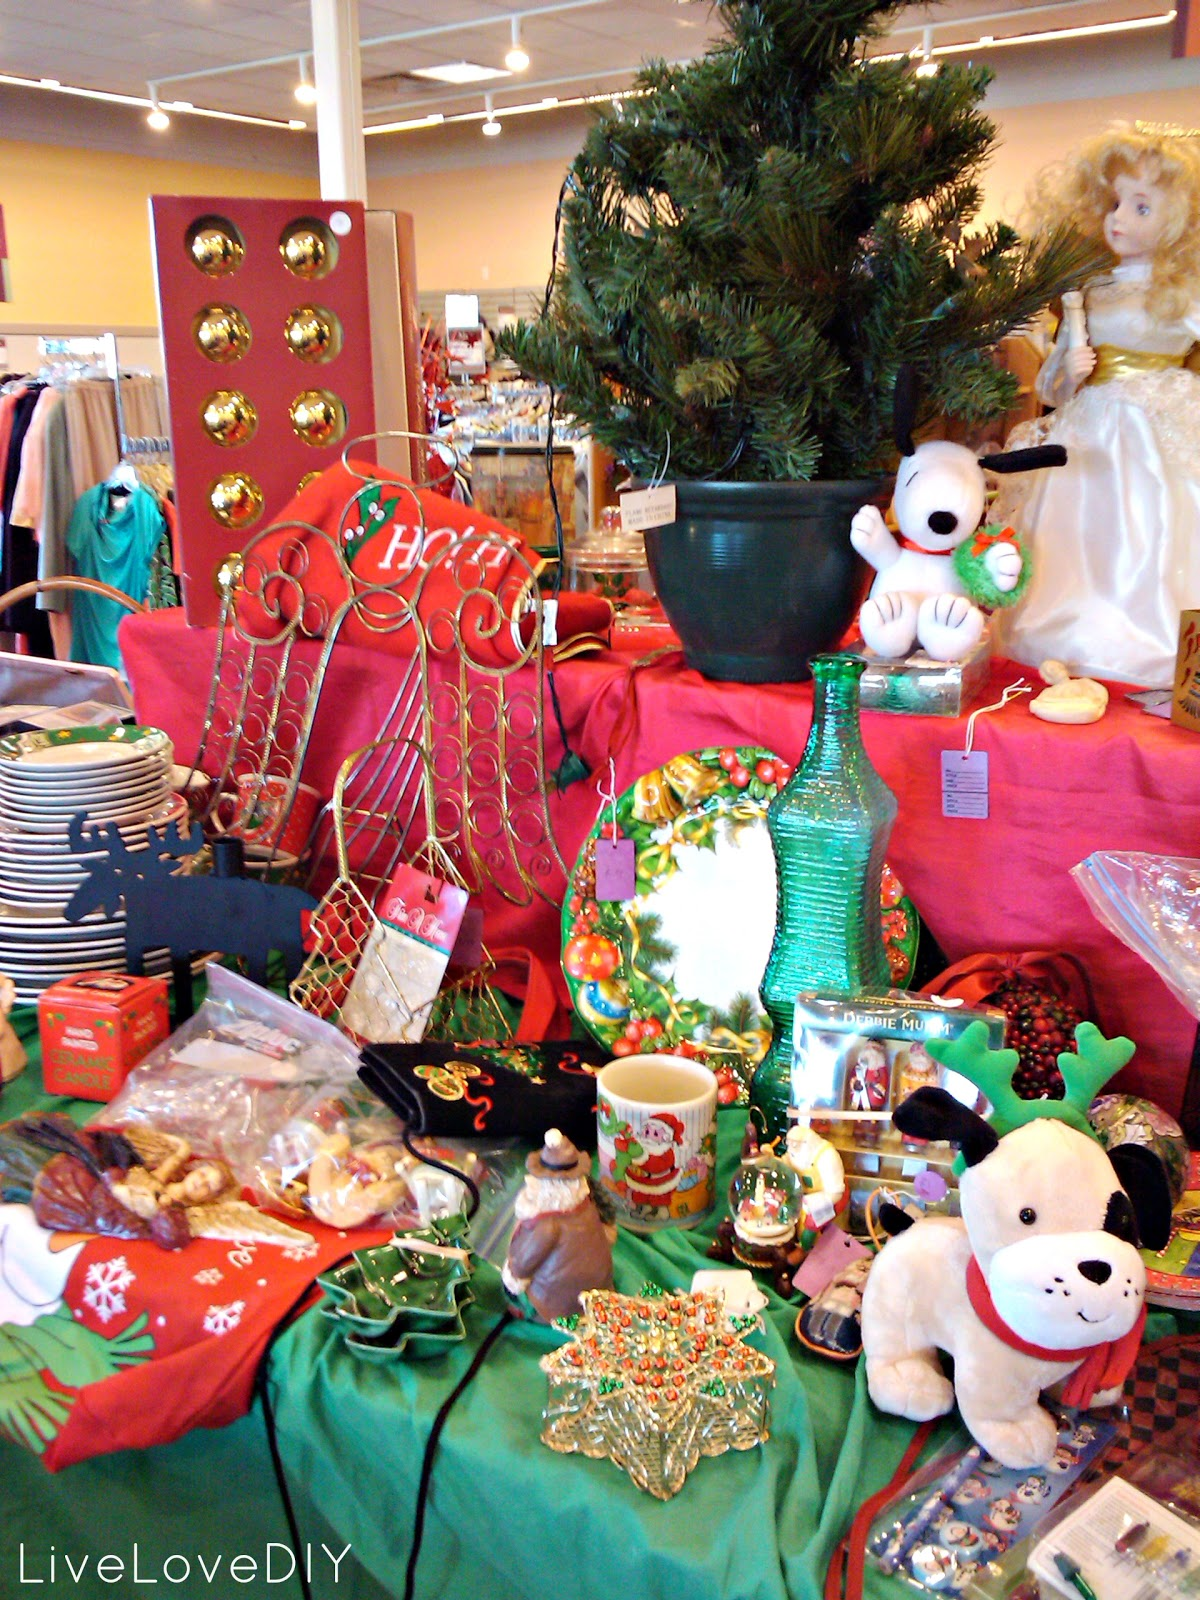 LiveLoveDIY How To Shop at a Thrift Store for Christmas Decor